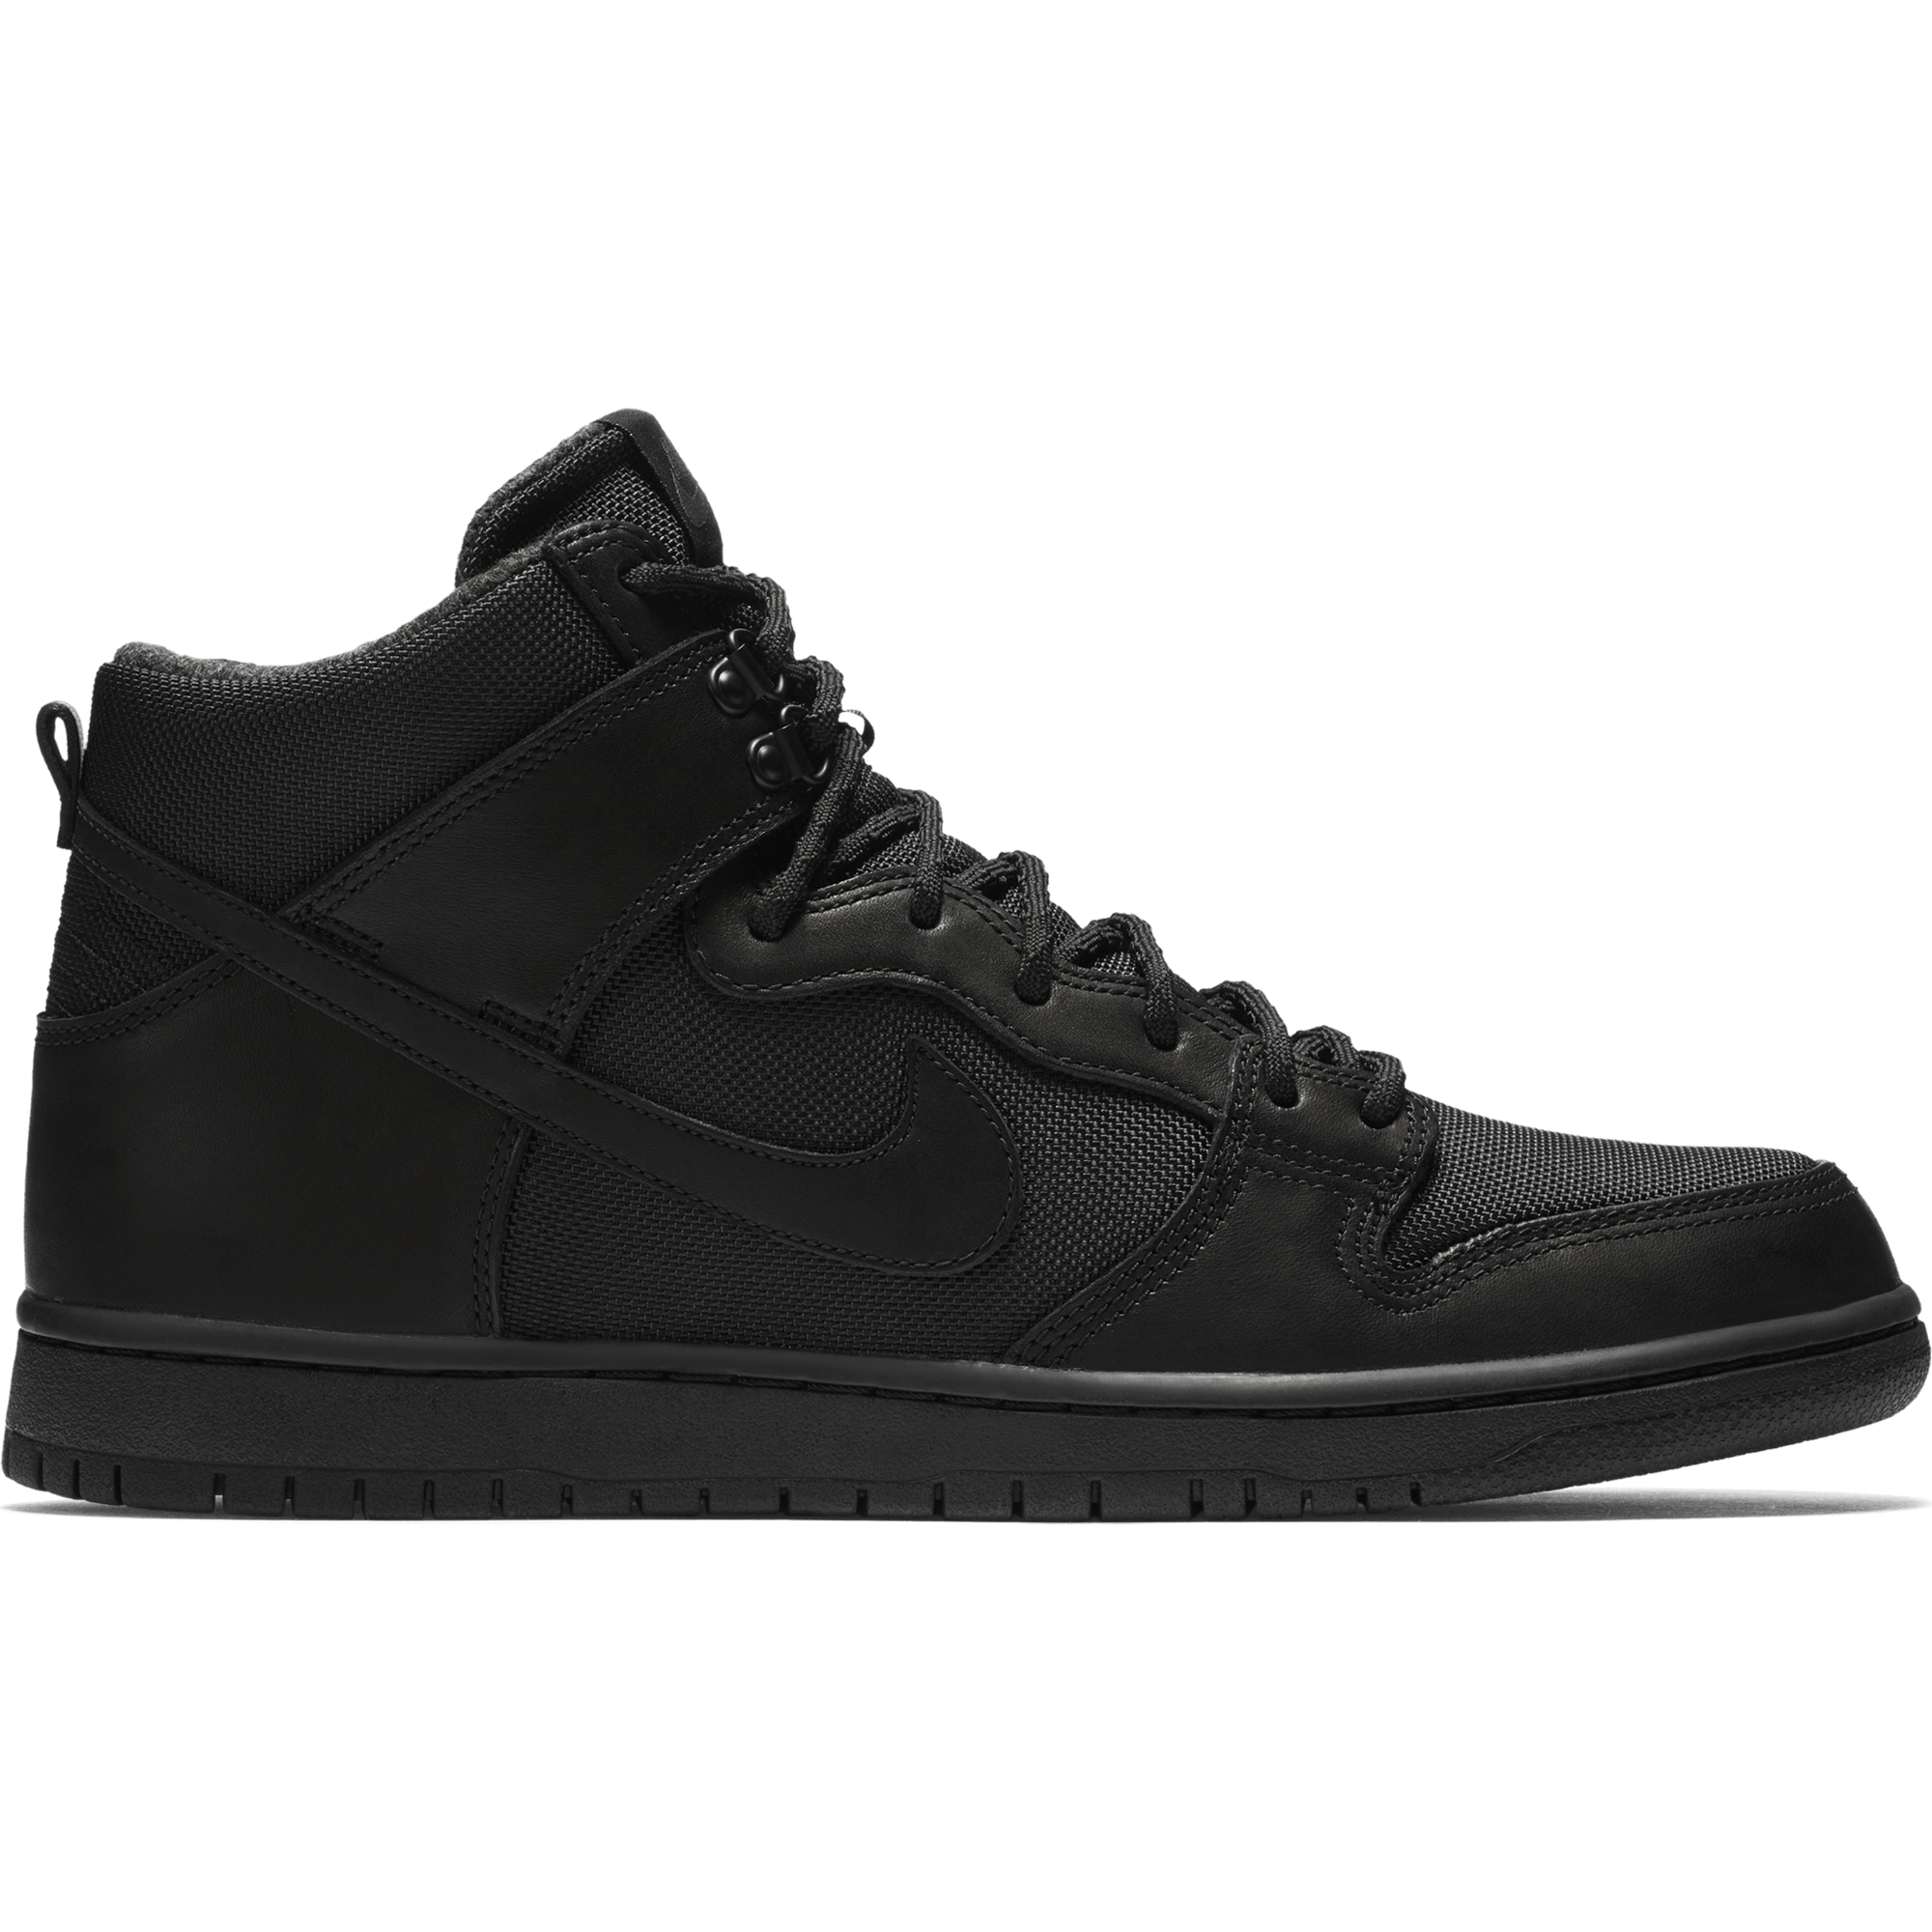 nike shoes white and black high top. free delivery nike sb zoom dunk high pro bota skate shoes - black/black/anthracite white and black top